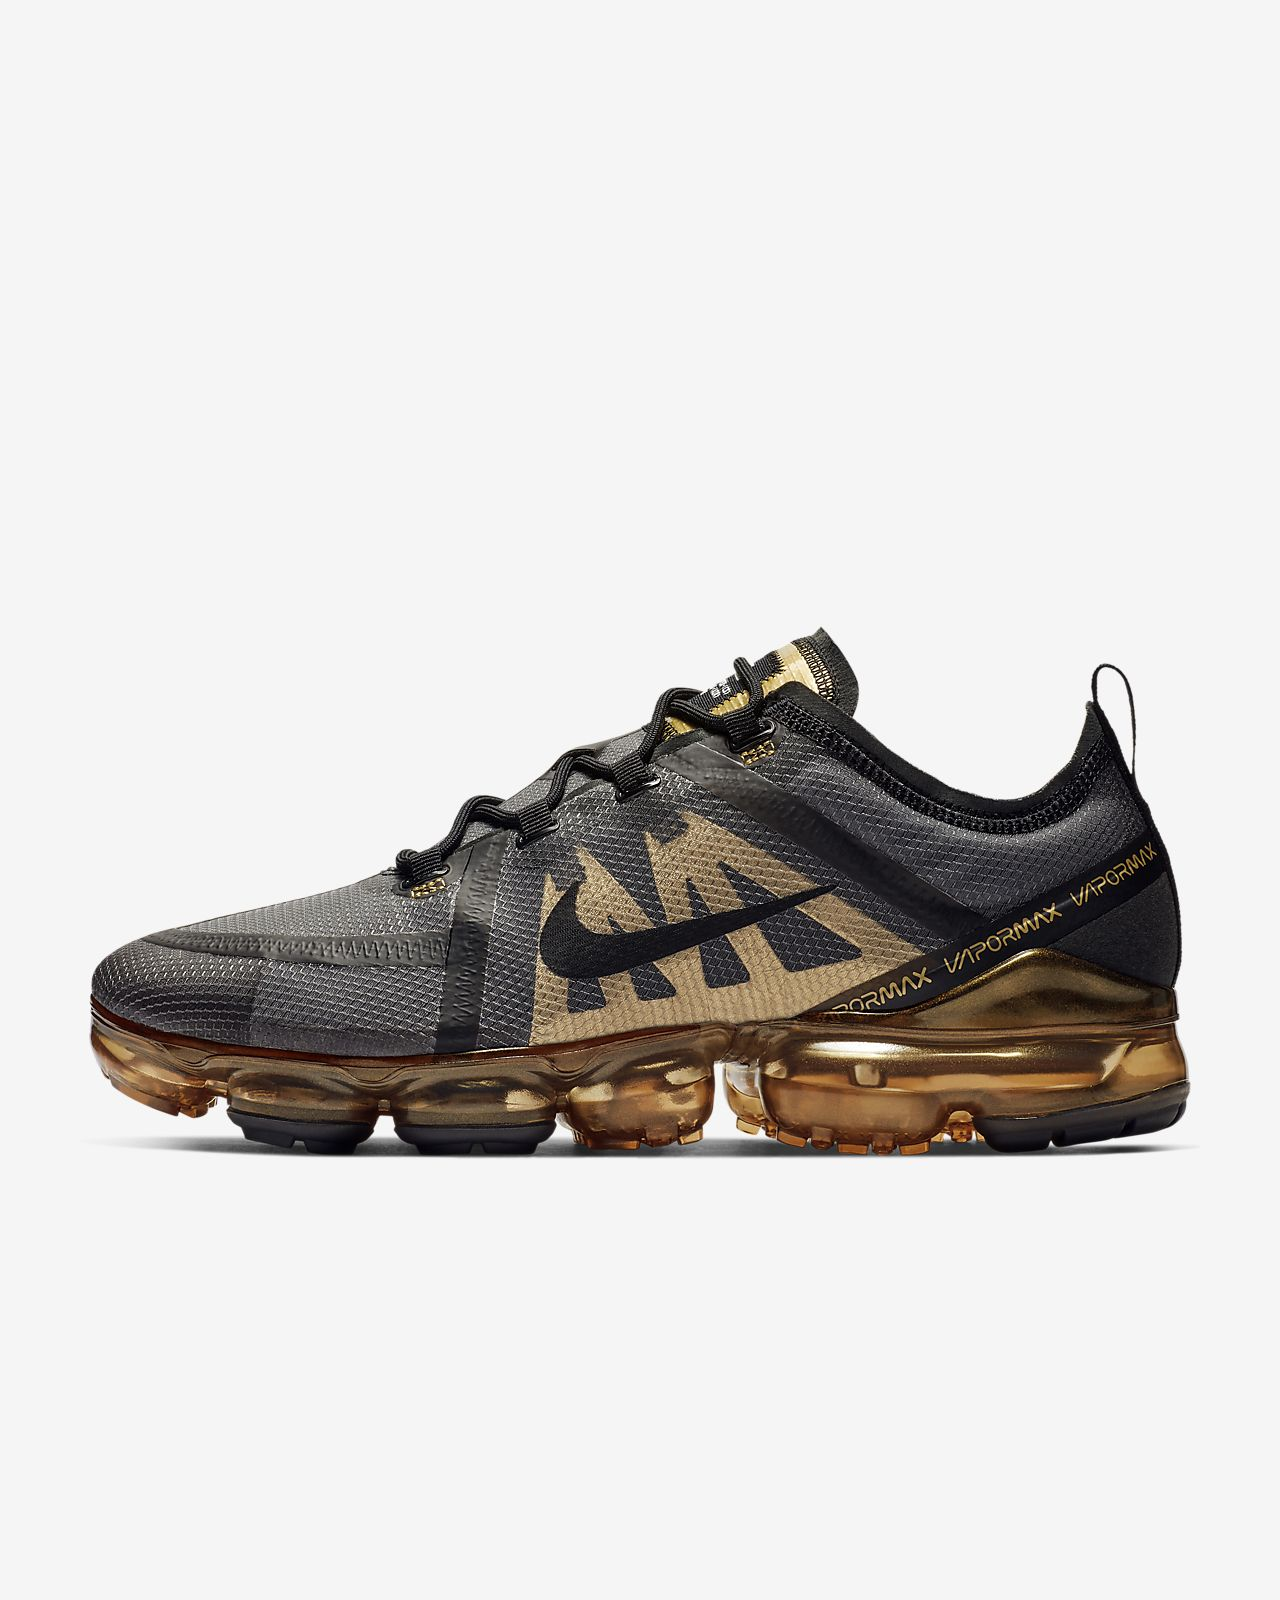 Super Chaussure Nike Air VaporMax 2019 pour Homme. Nike.com FR @TO_09